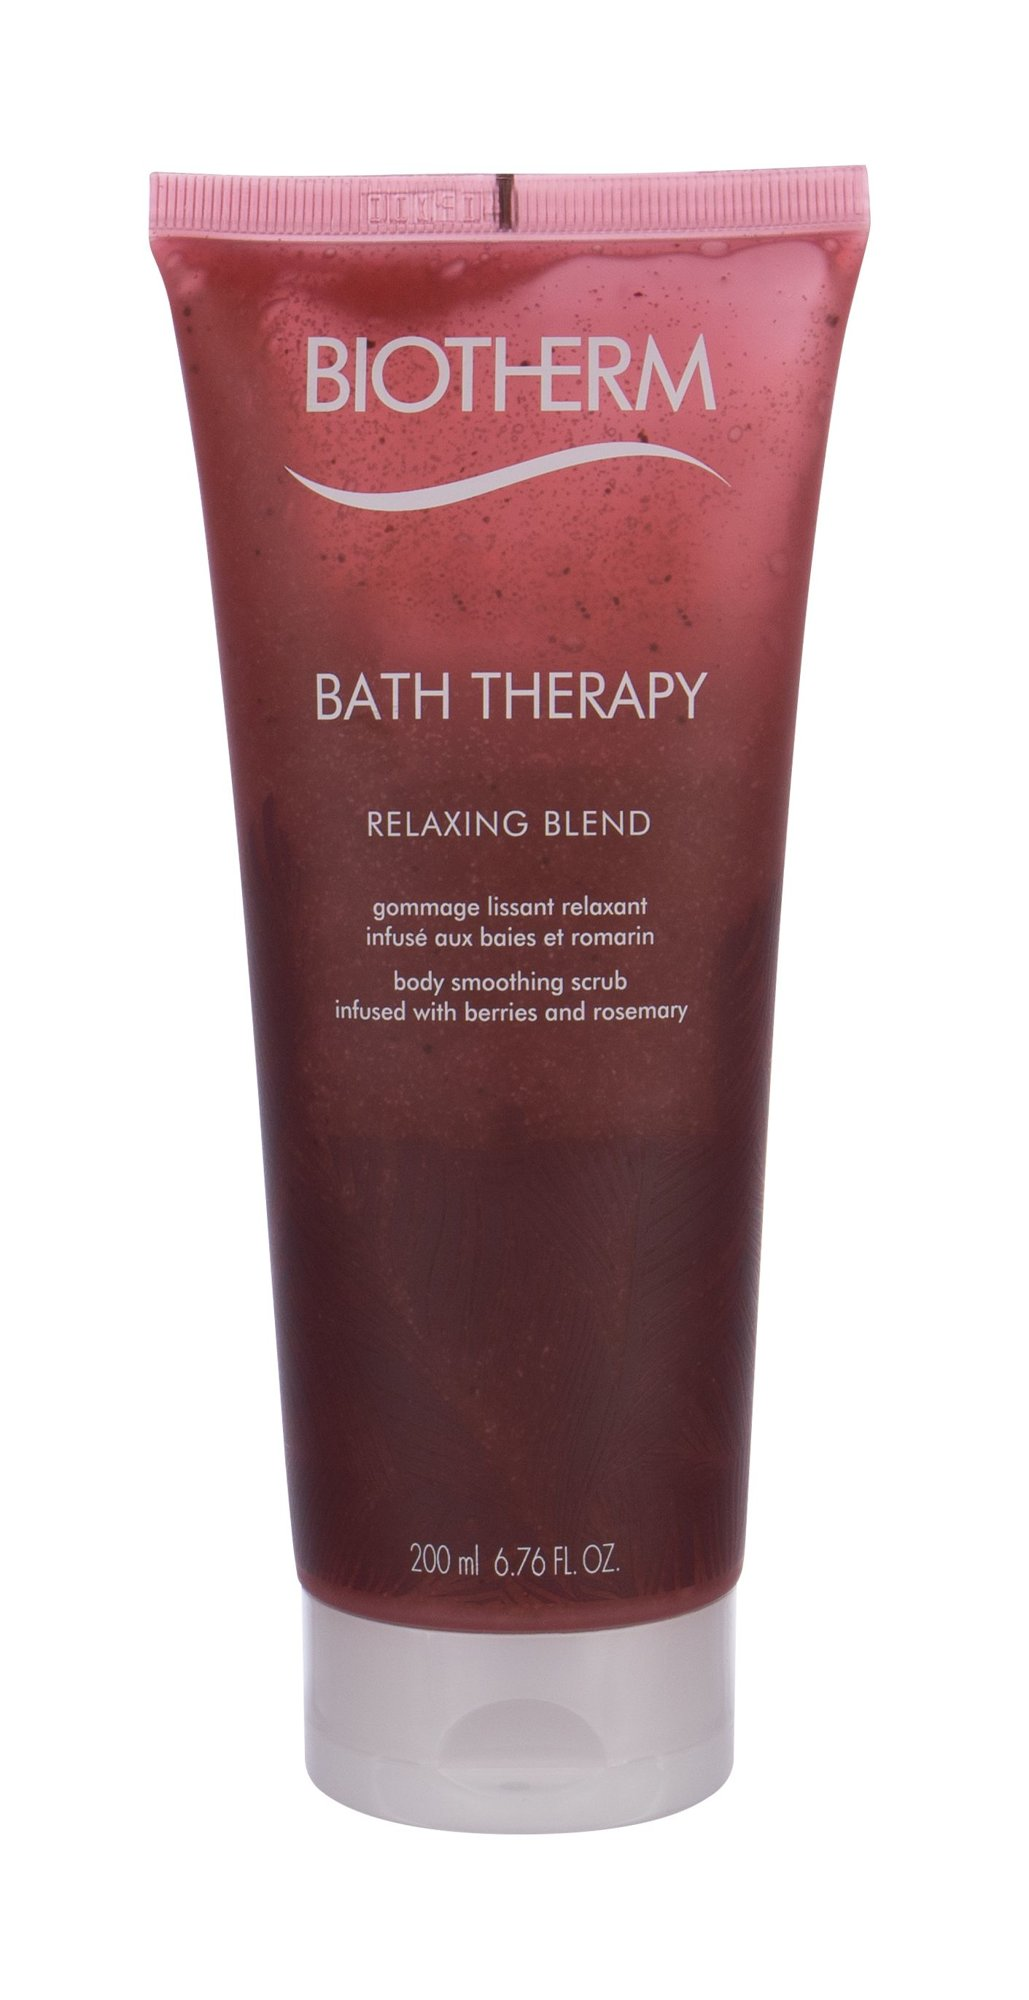 Biotherm Bath Therapy Body Peeling 200ml  Relaxing Blend